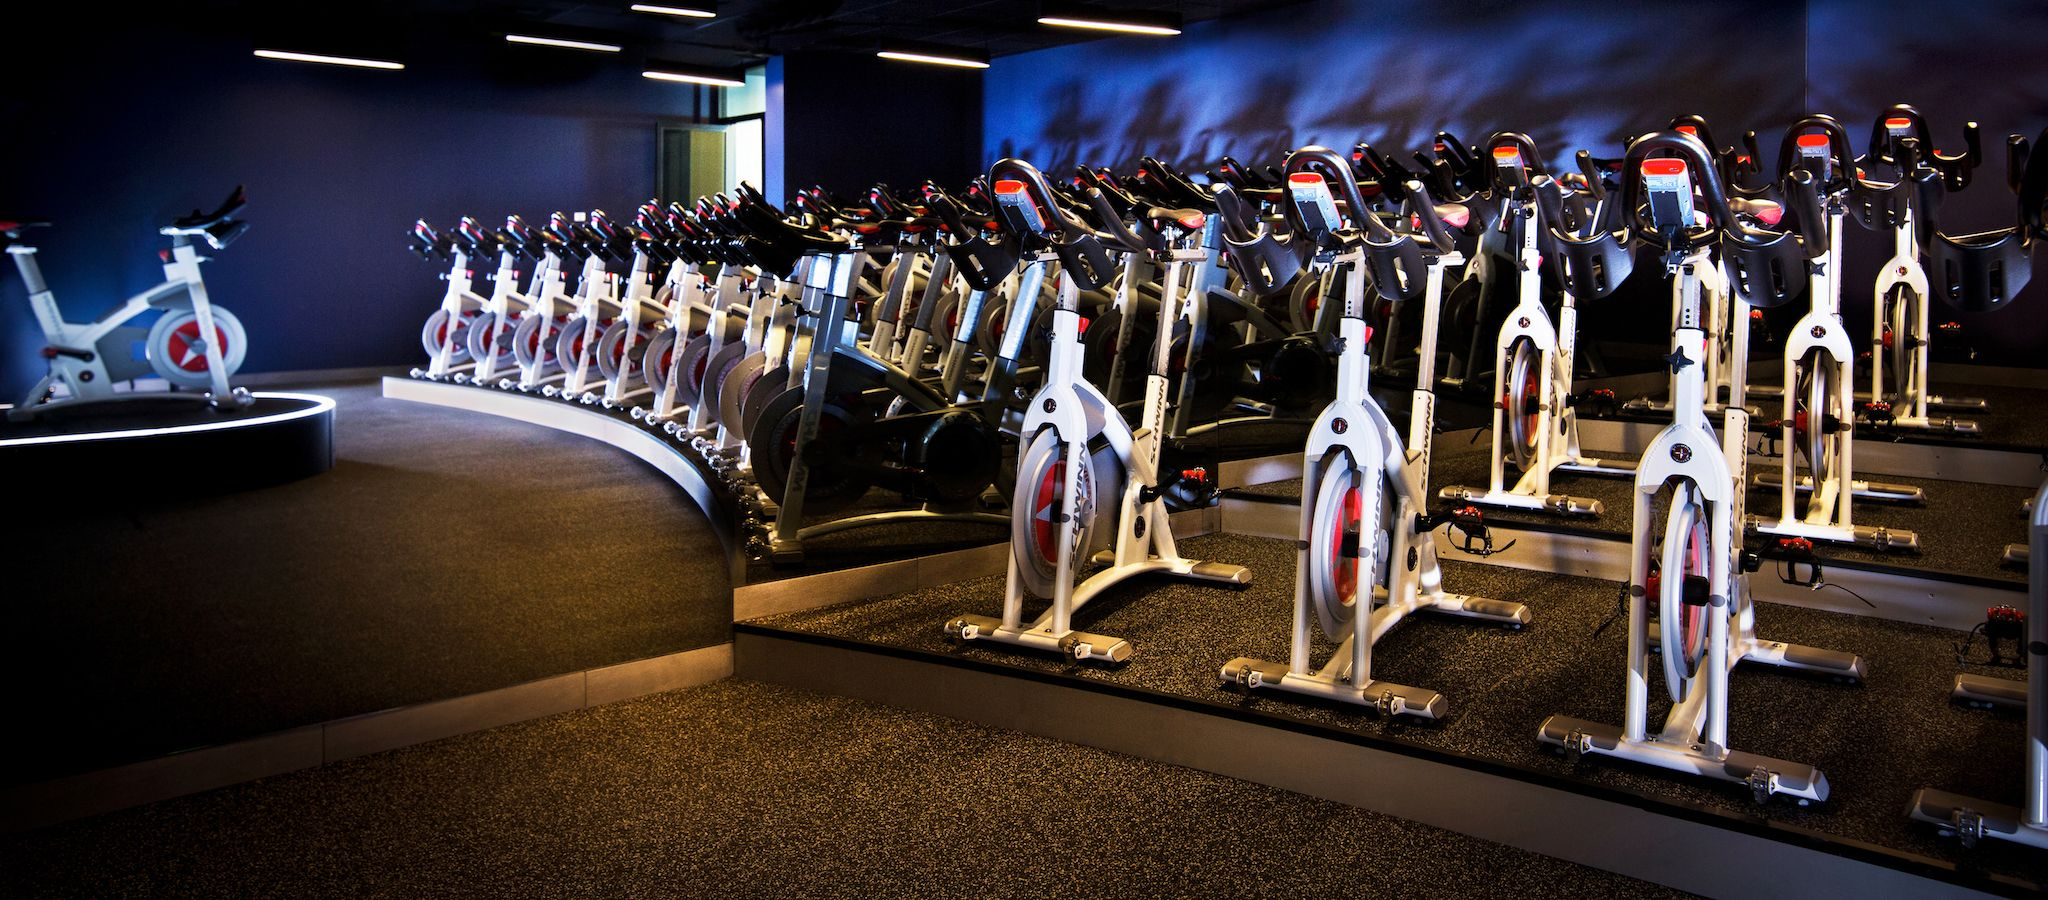 Equinox east 54rd street unparalleled fitness clubs in